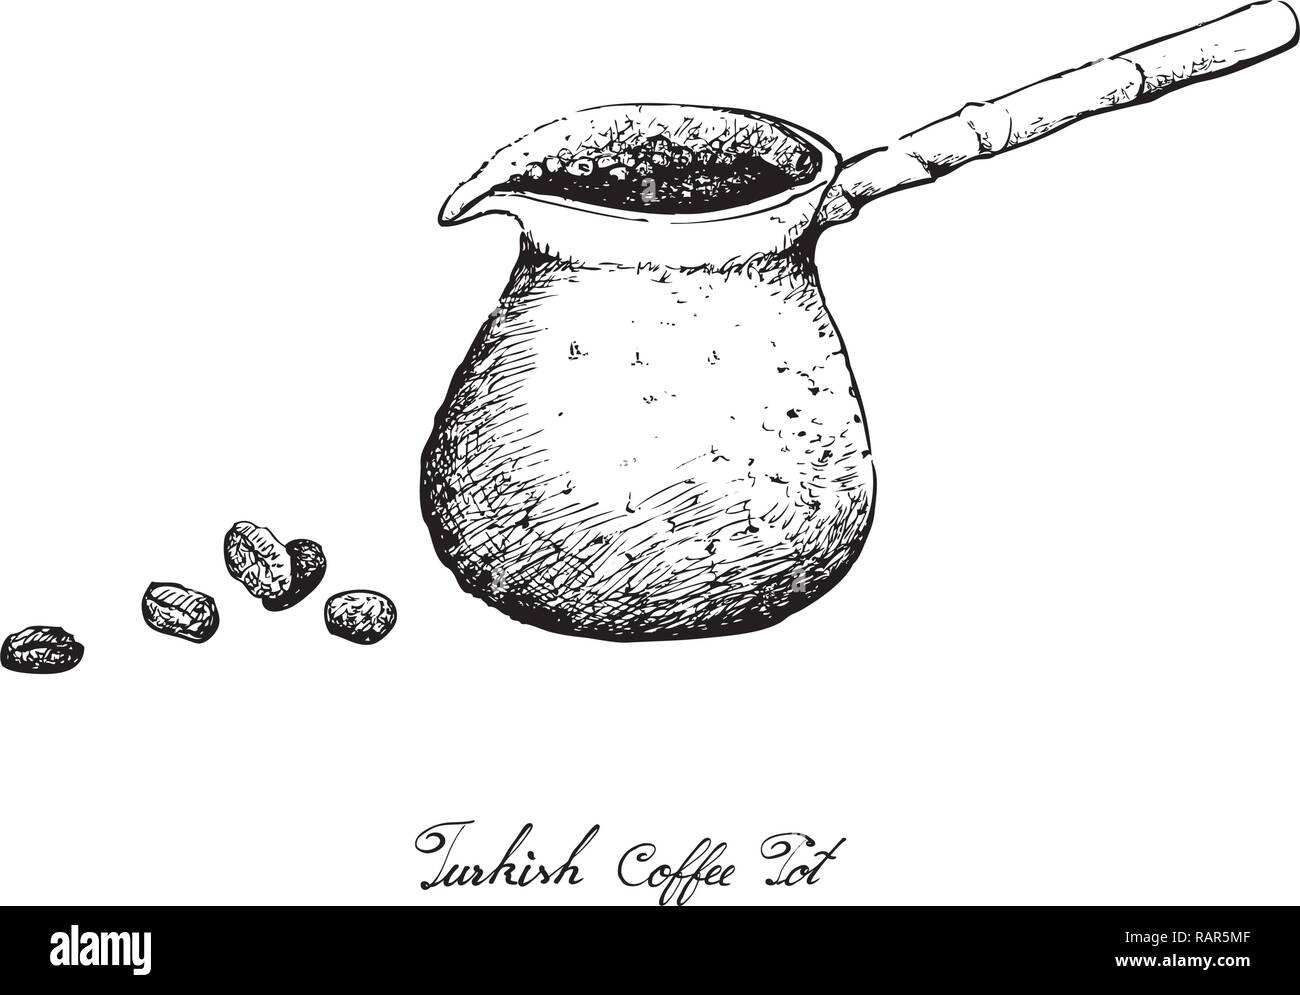 Turkish Cuisine, Turkish Coffee with Cezve or Coffee Pot. One of The Popular Drink in Turkey. - Stock Vector